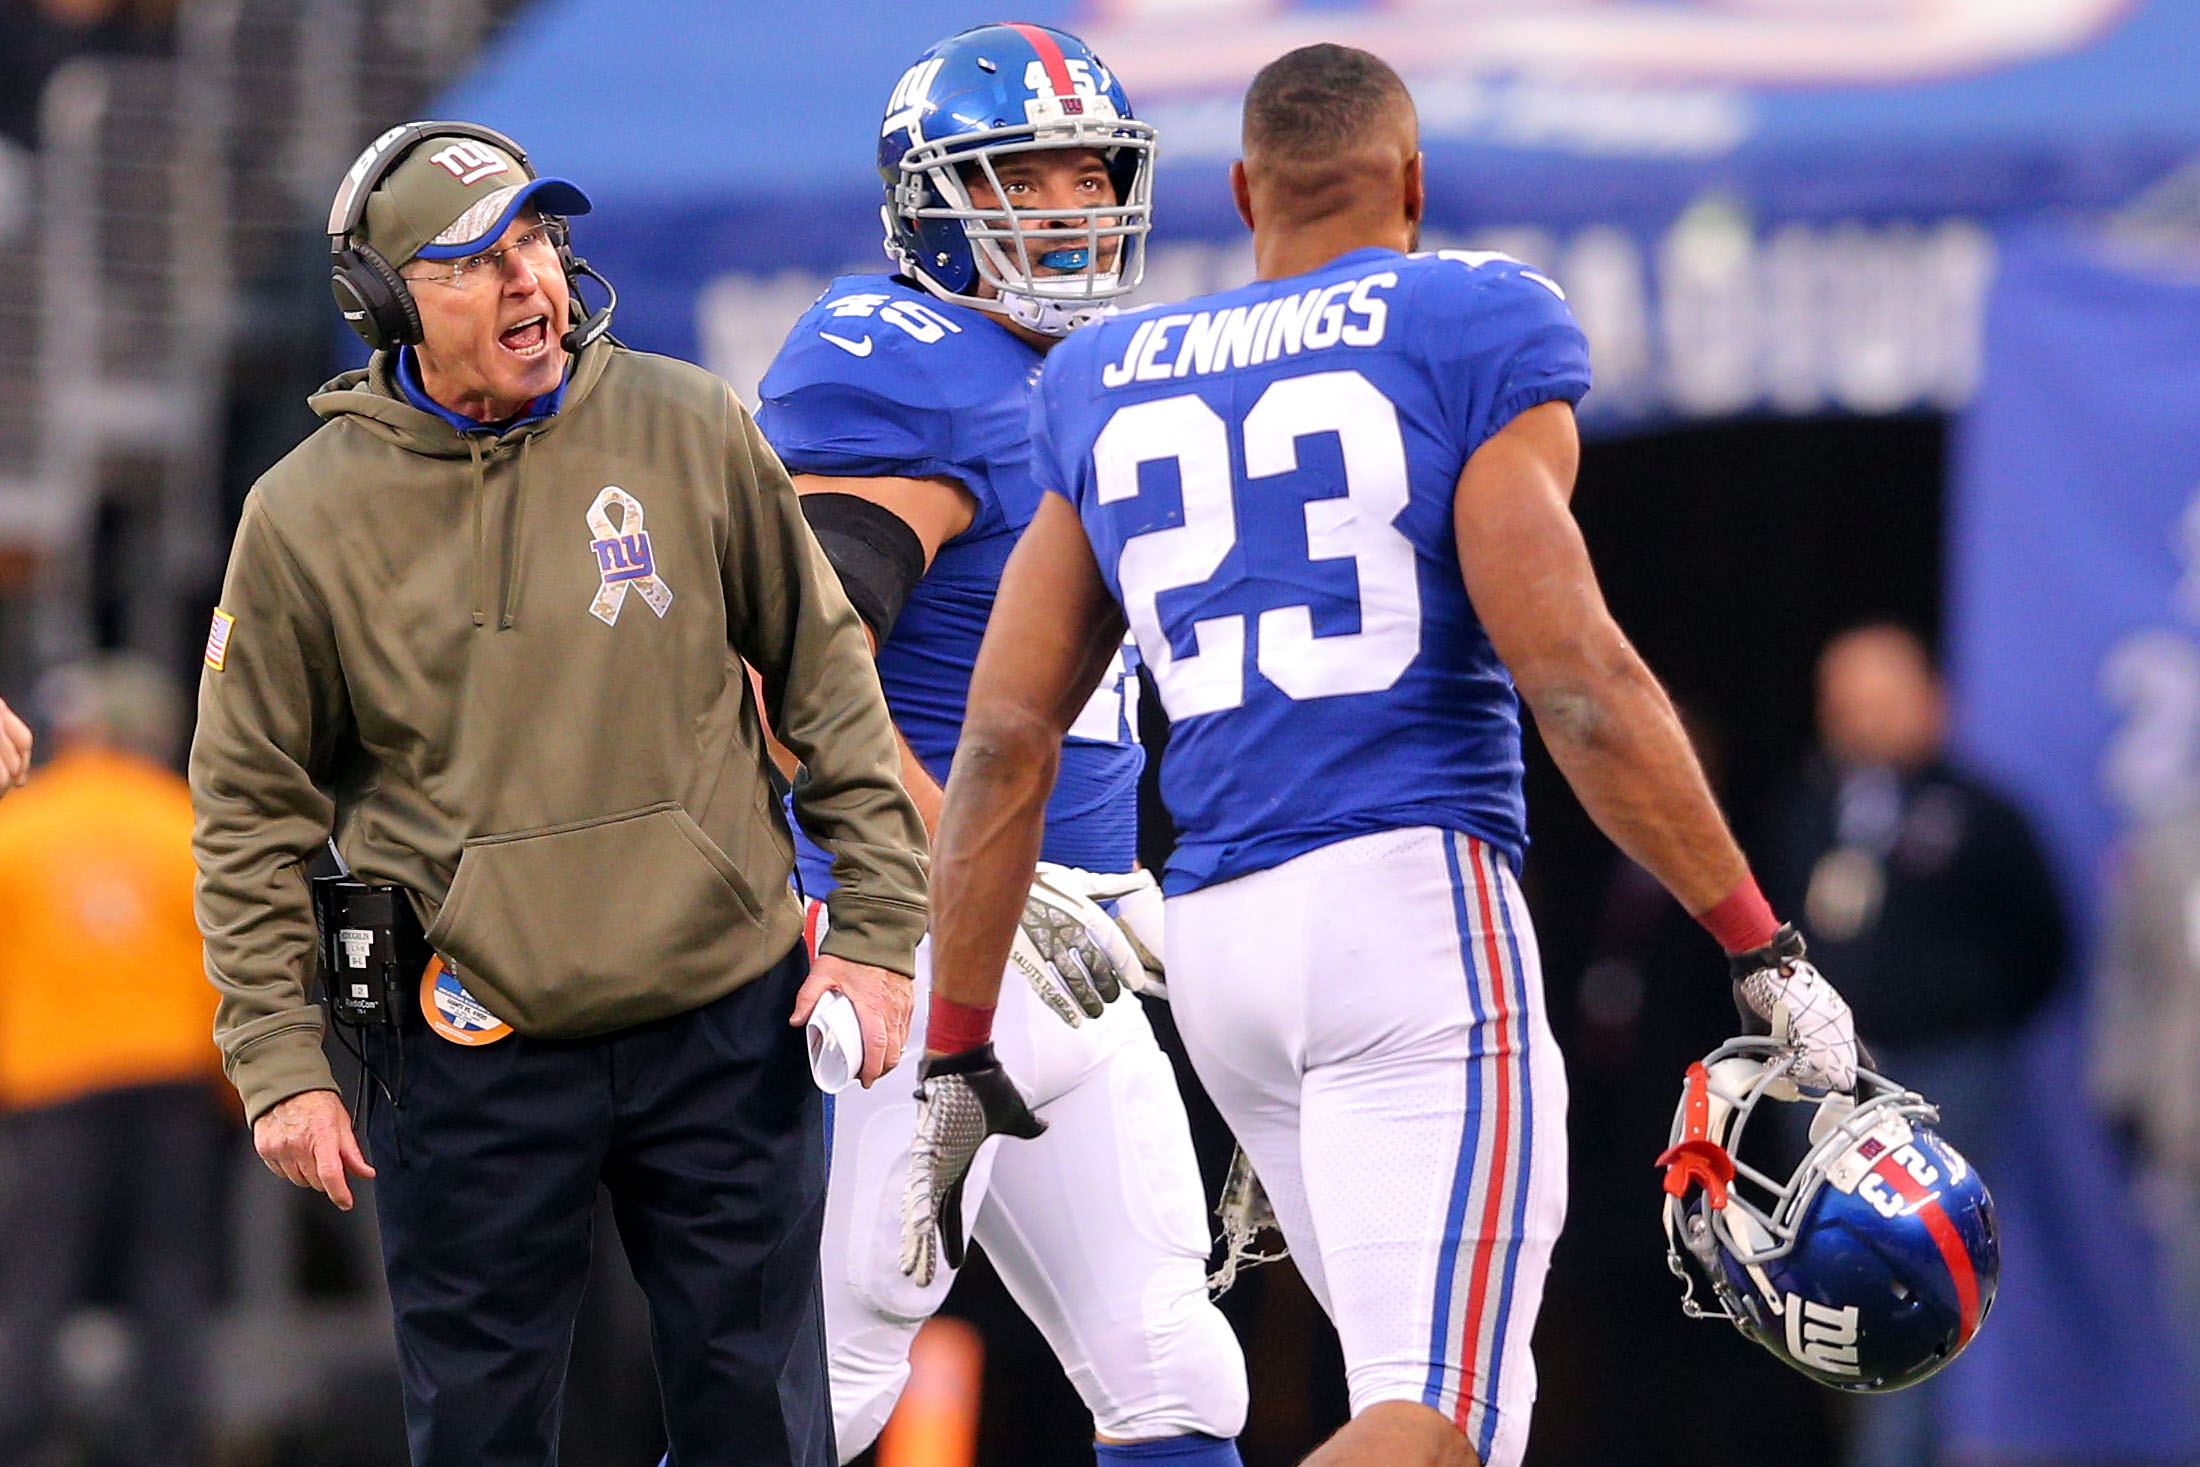 Nov 16, 2014; East Rutherford, NJ, USA; New York Giants head coach Tom Coughlin reacts after New York Giants running back Rashad Jennings (23) failed to convert a fourth-and-one against the San Francisco 49ers during the third quarter at MetLife Stadium. The 49ers defeated the Giants 16-10. Mandatory Credit: Brad Penner-USA TODAY Sports